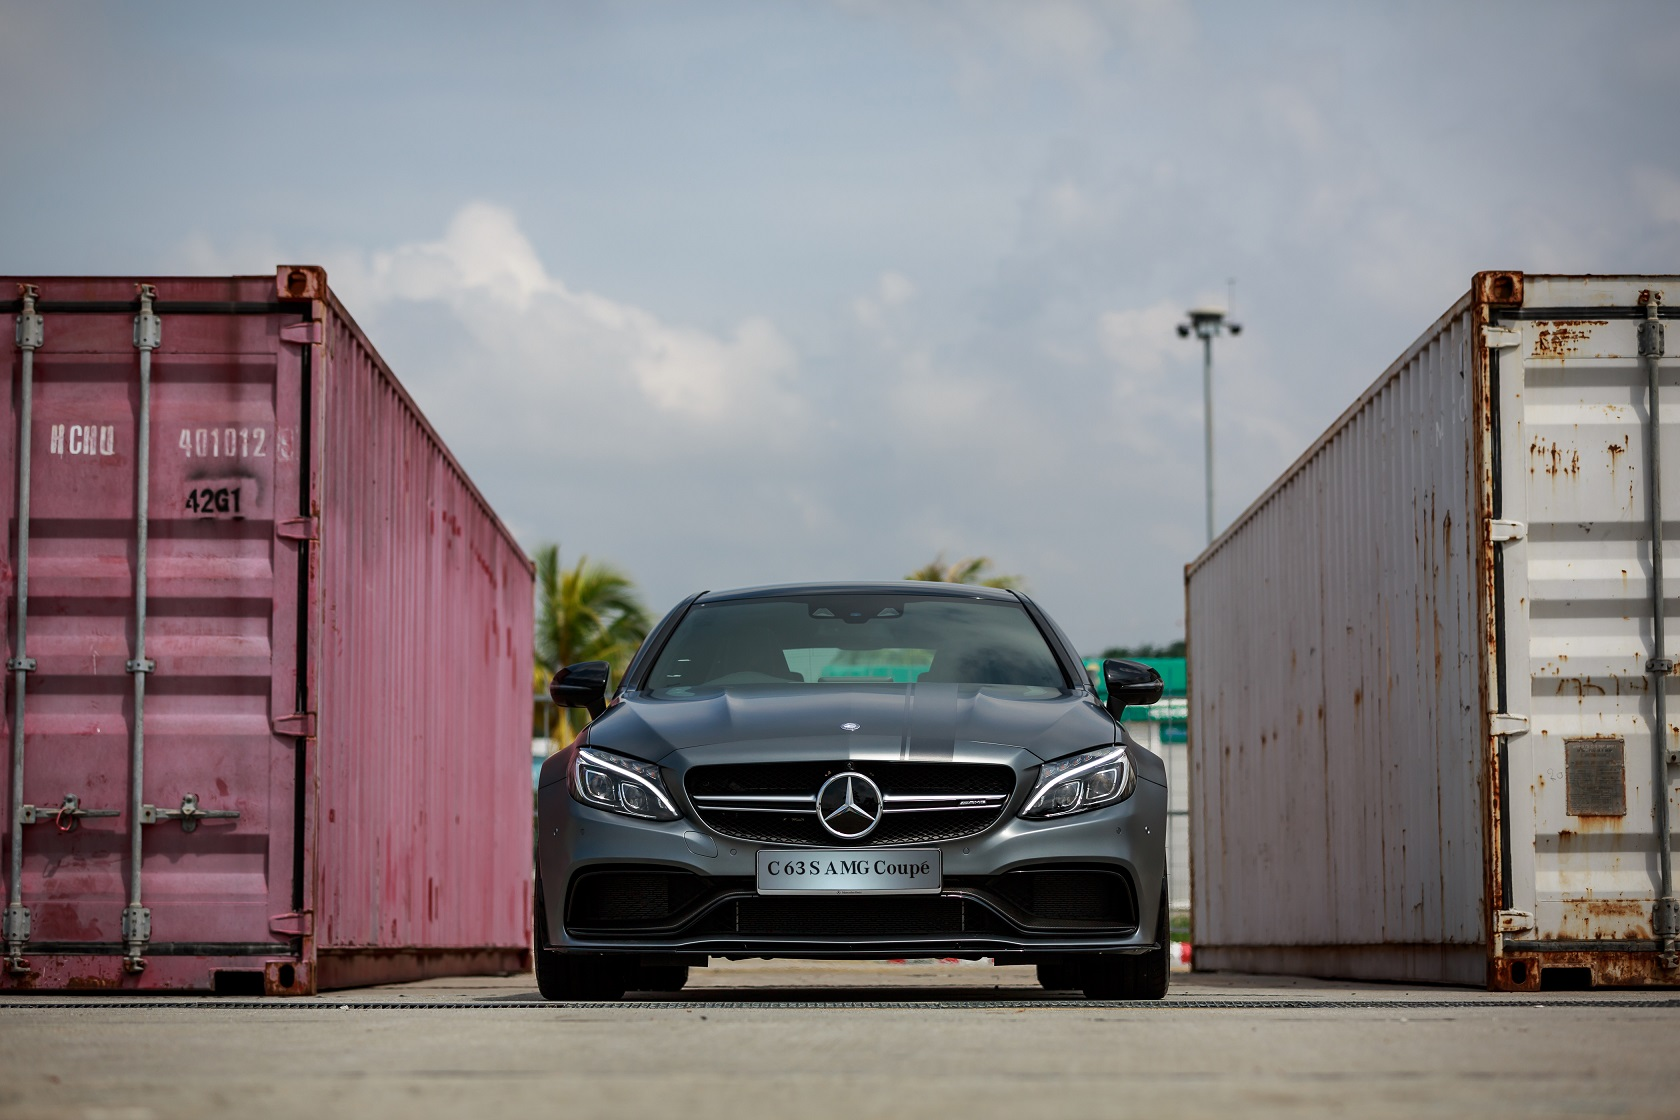 mercedes-amg-c-63-s-coupe-edition-1-1